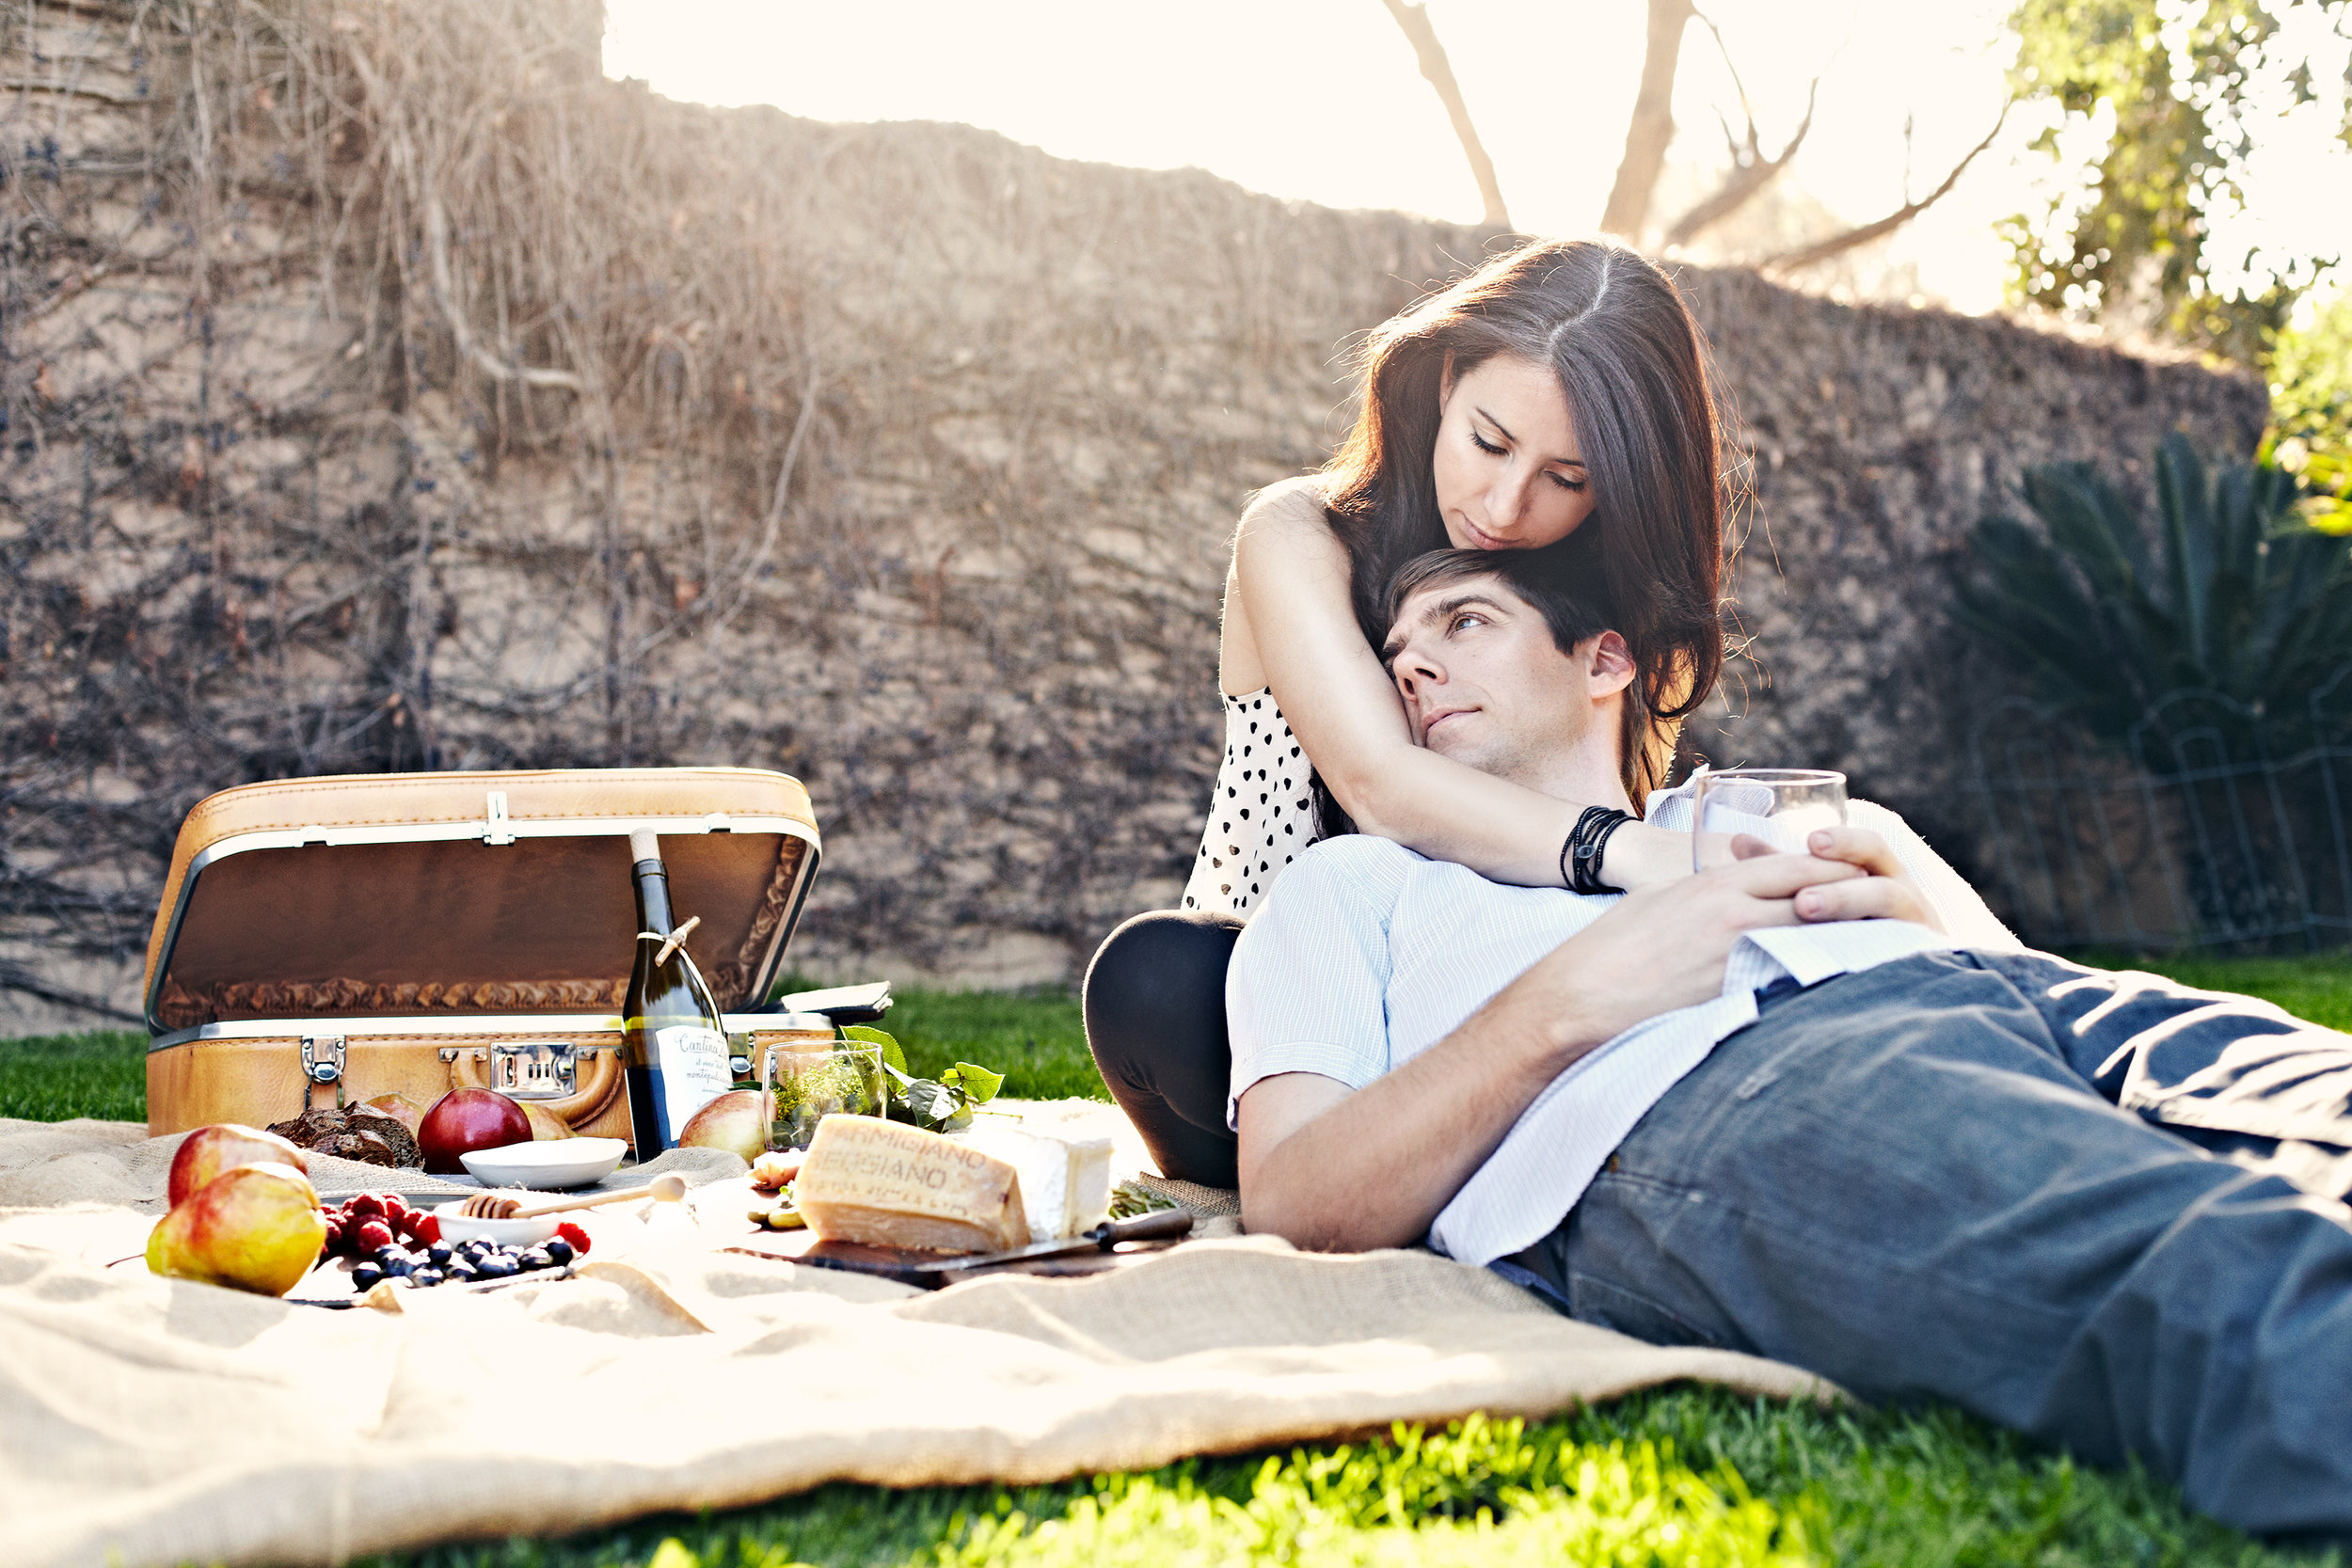 Couple embracing having a Spanish picnic with dappled light, charcuterie board, fruit, and wine